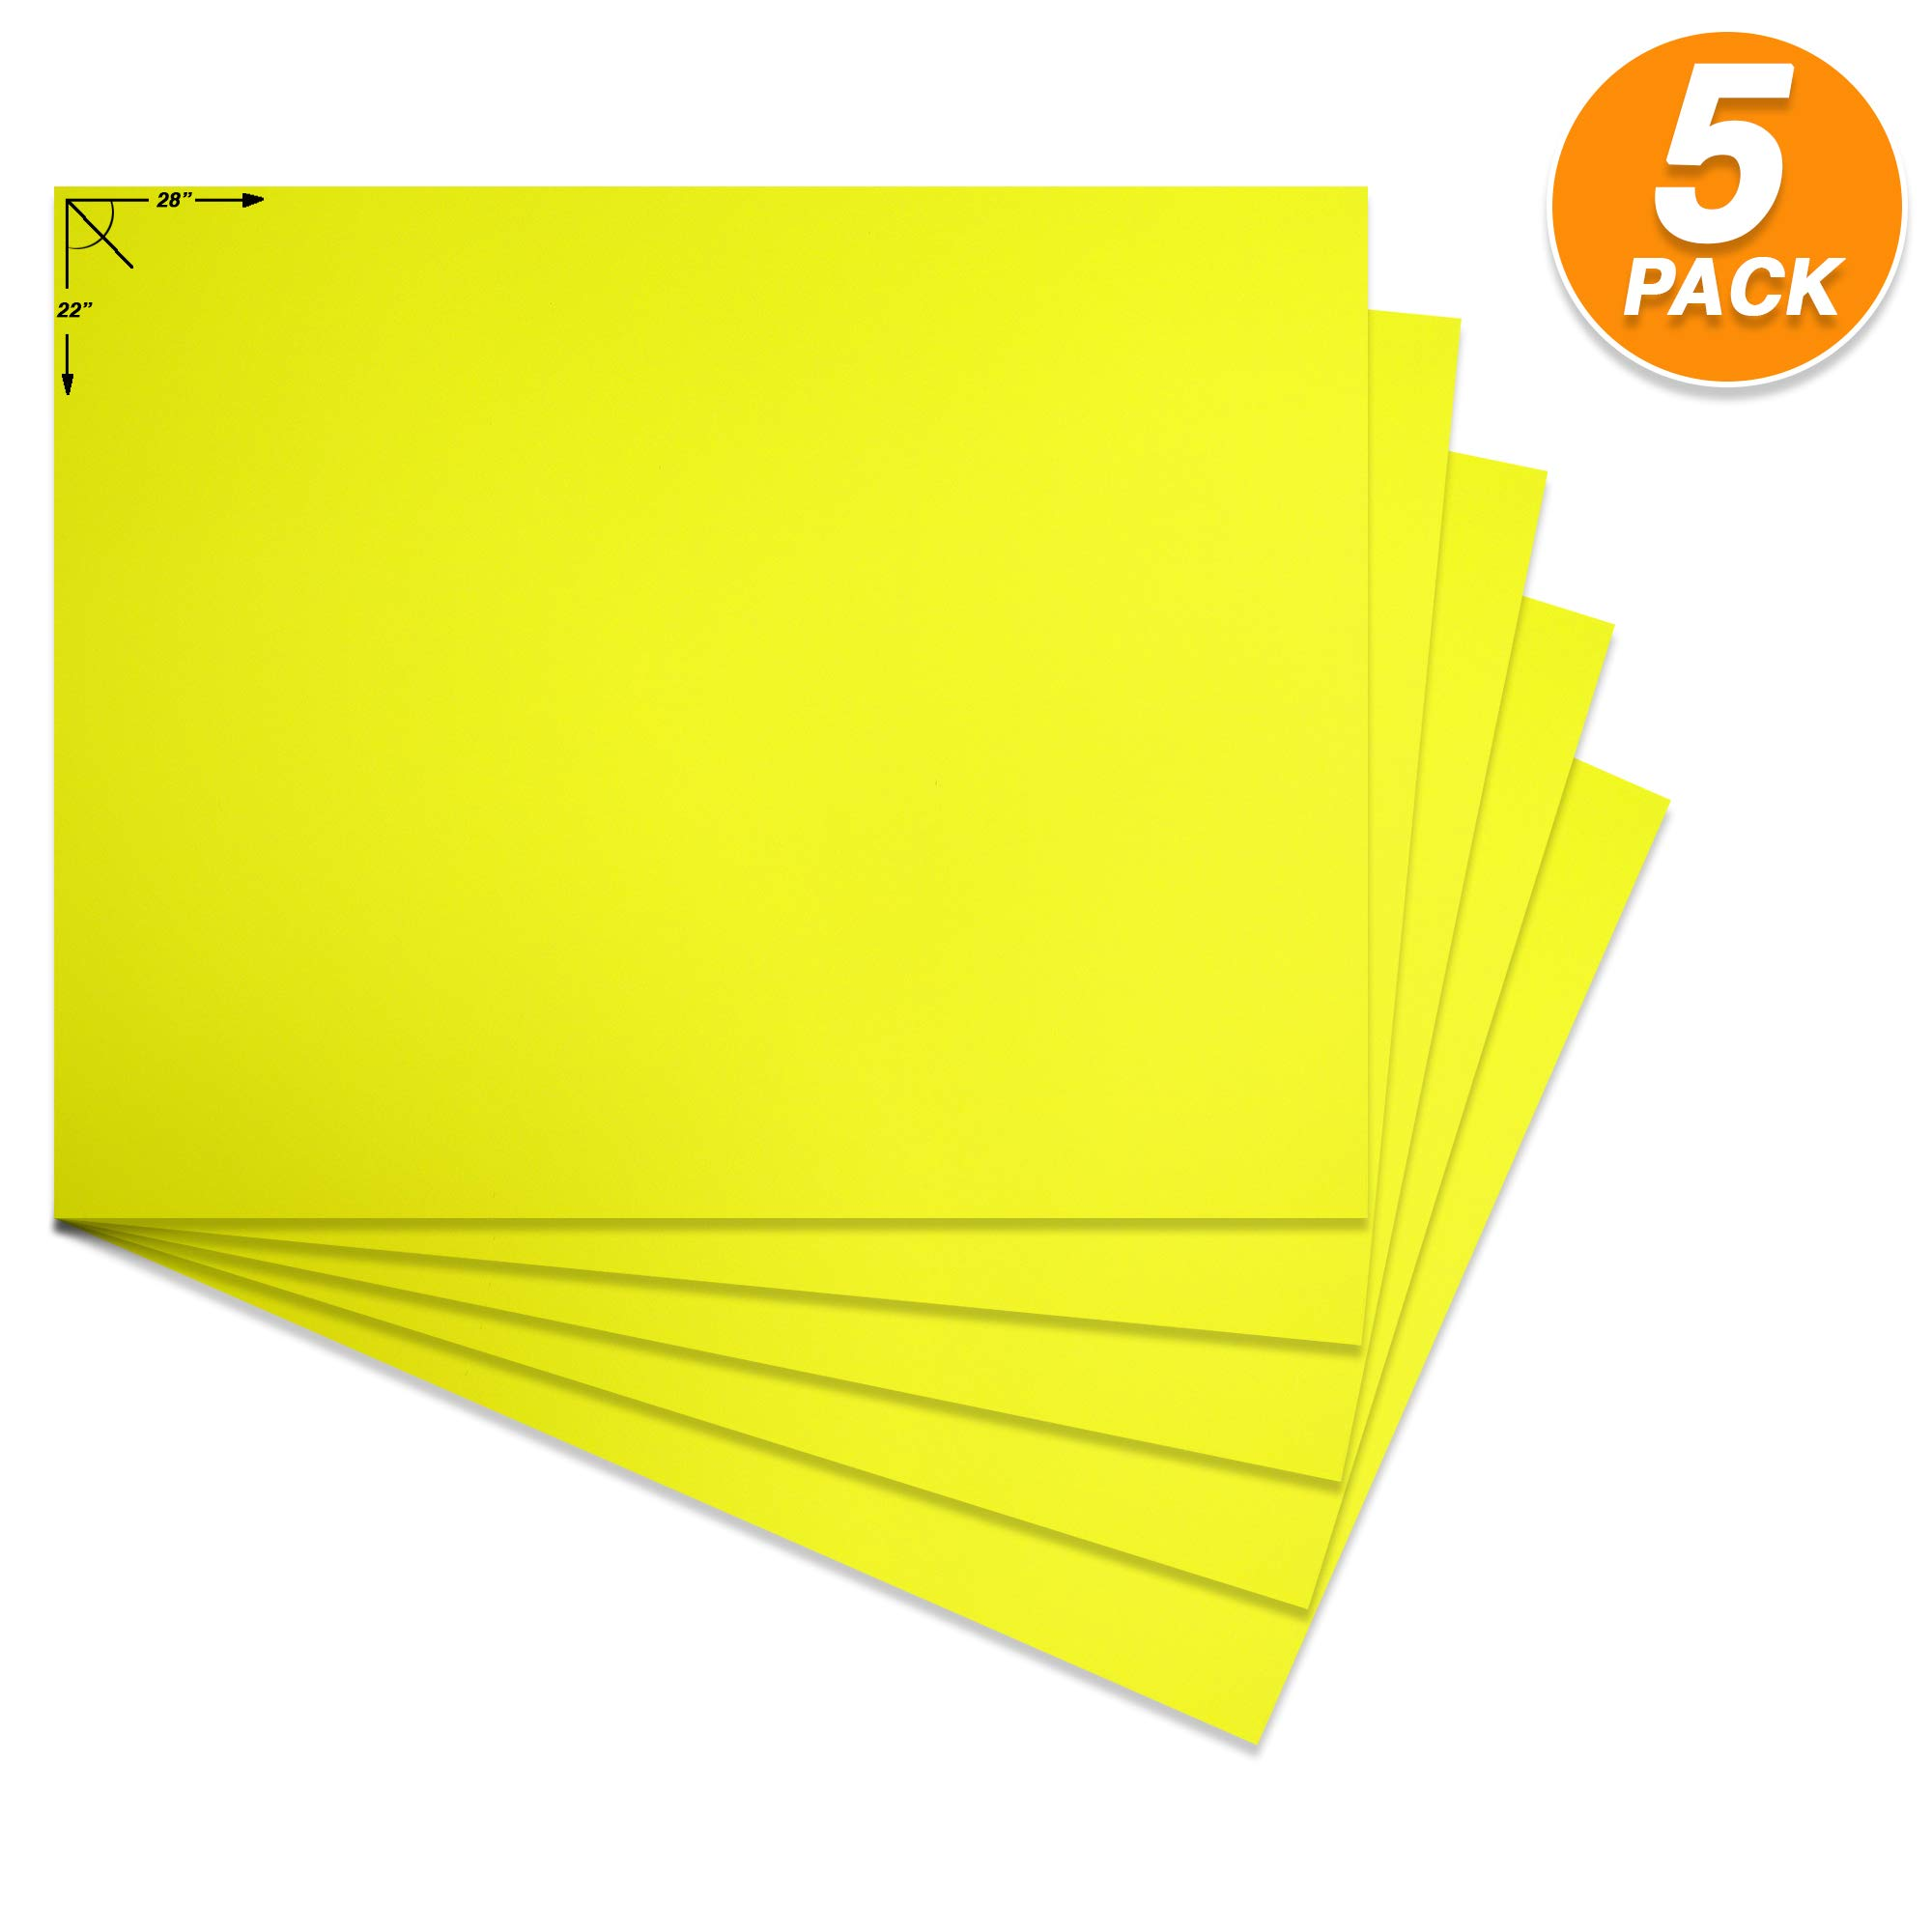 Emraw Poster Board Lightweight Craft Backing Boards for Presentations Office Sign Blank Painting Board Smooth Surface Poster Sheets for School Pack of 5 (Fluorescent Yellow) by Emraw